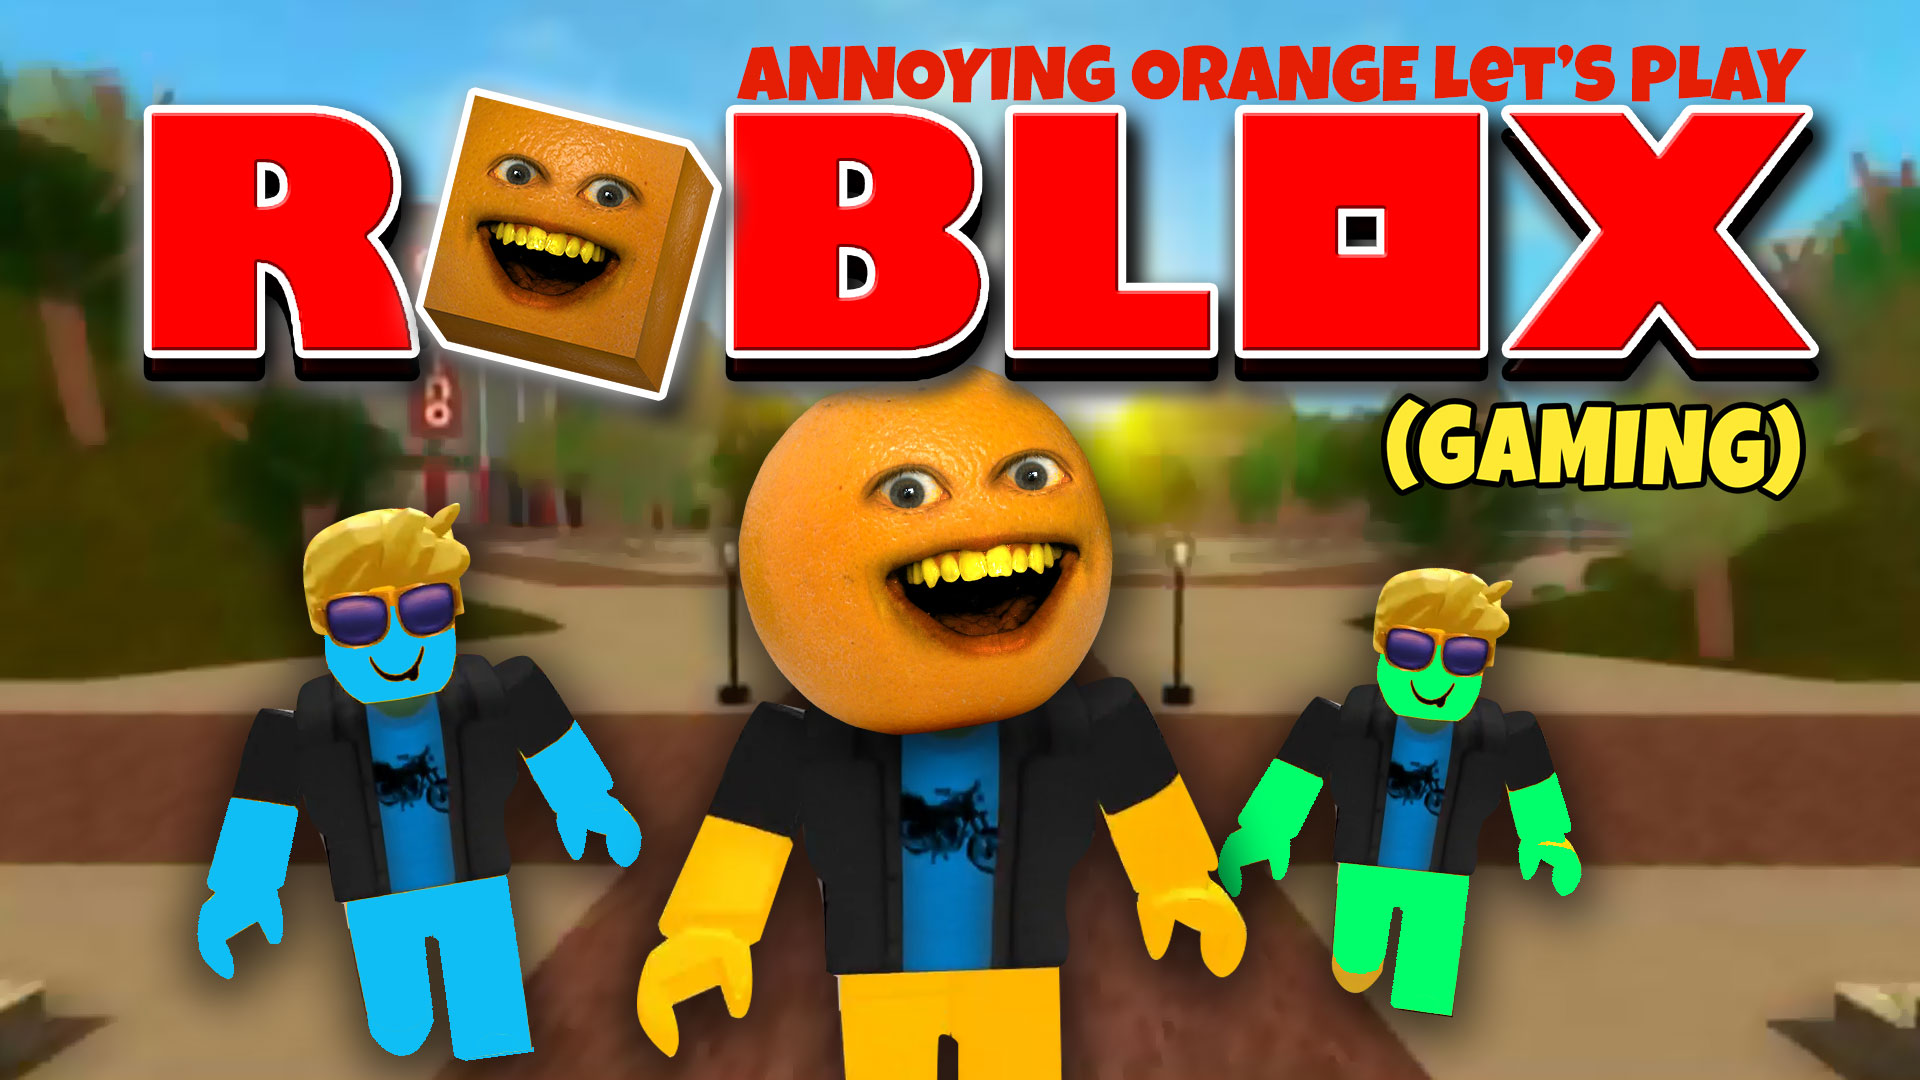 Roblox Pennywise Game Watch Clip Roblox Horror Games Annoying Orange Gaming Prime Video